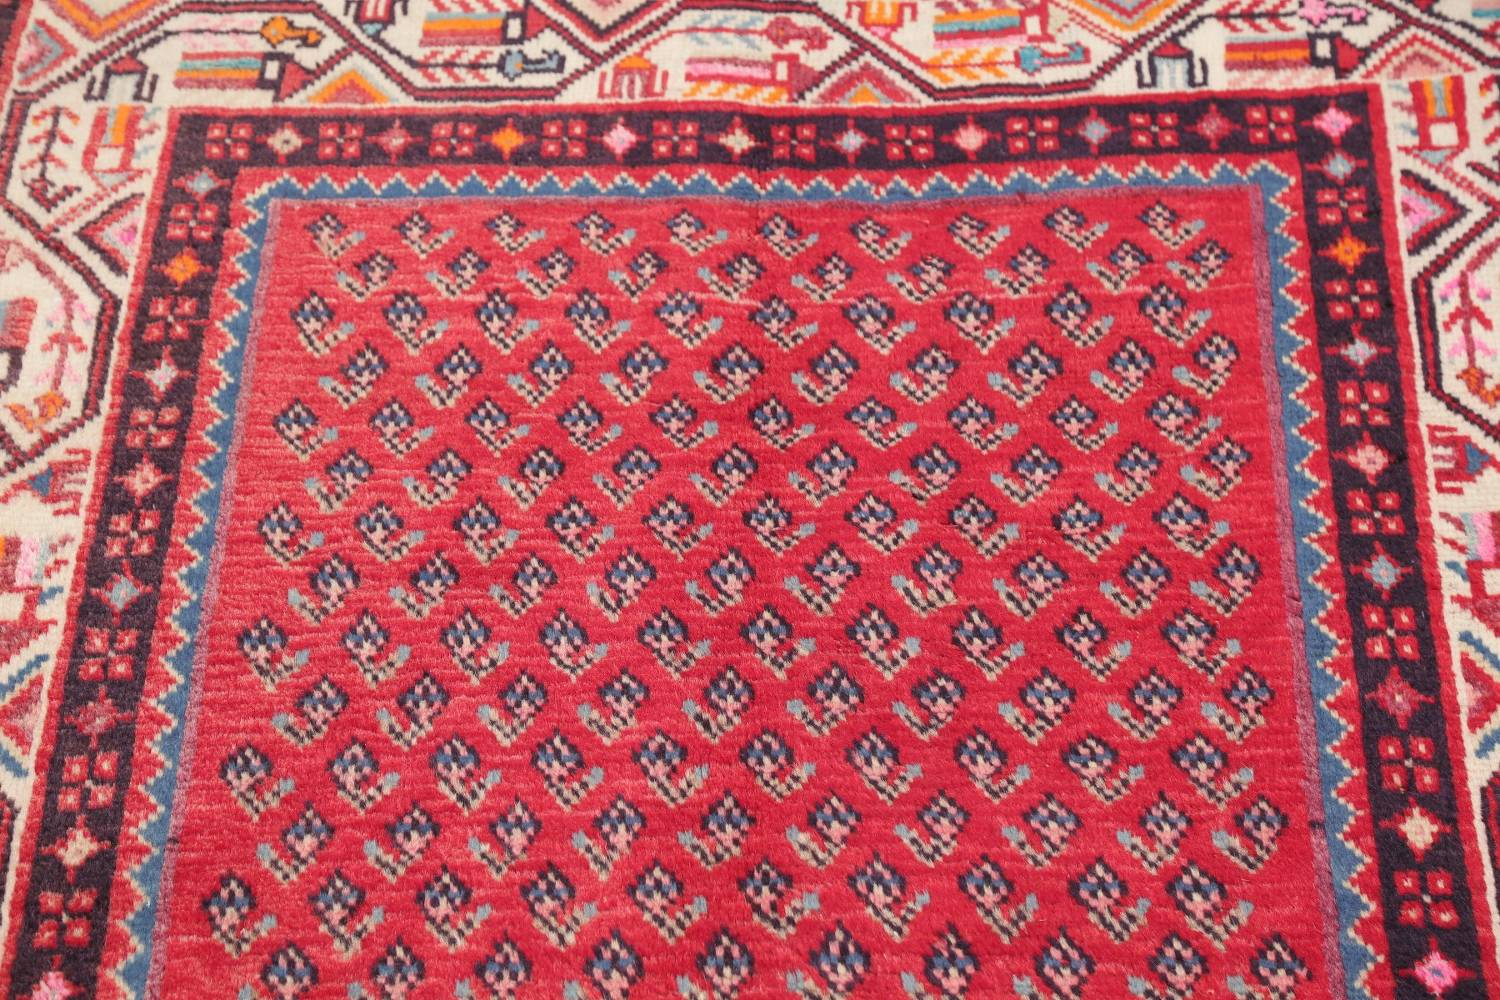 One-of-a-Kind Boteh Botemir Persian Runner Rug 3x13 image 11